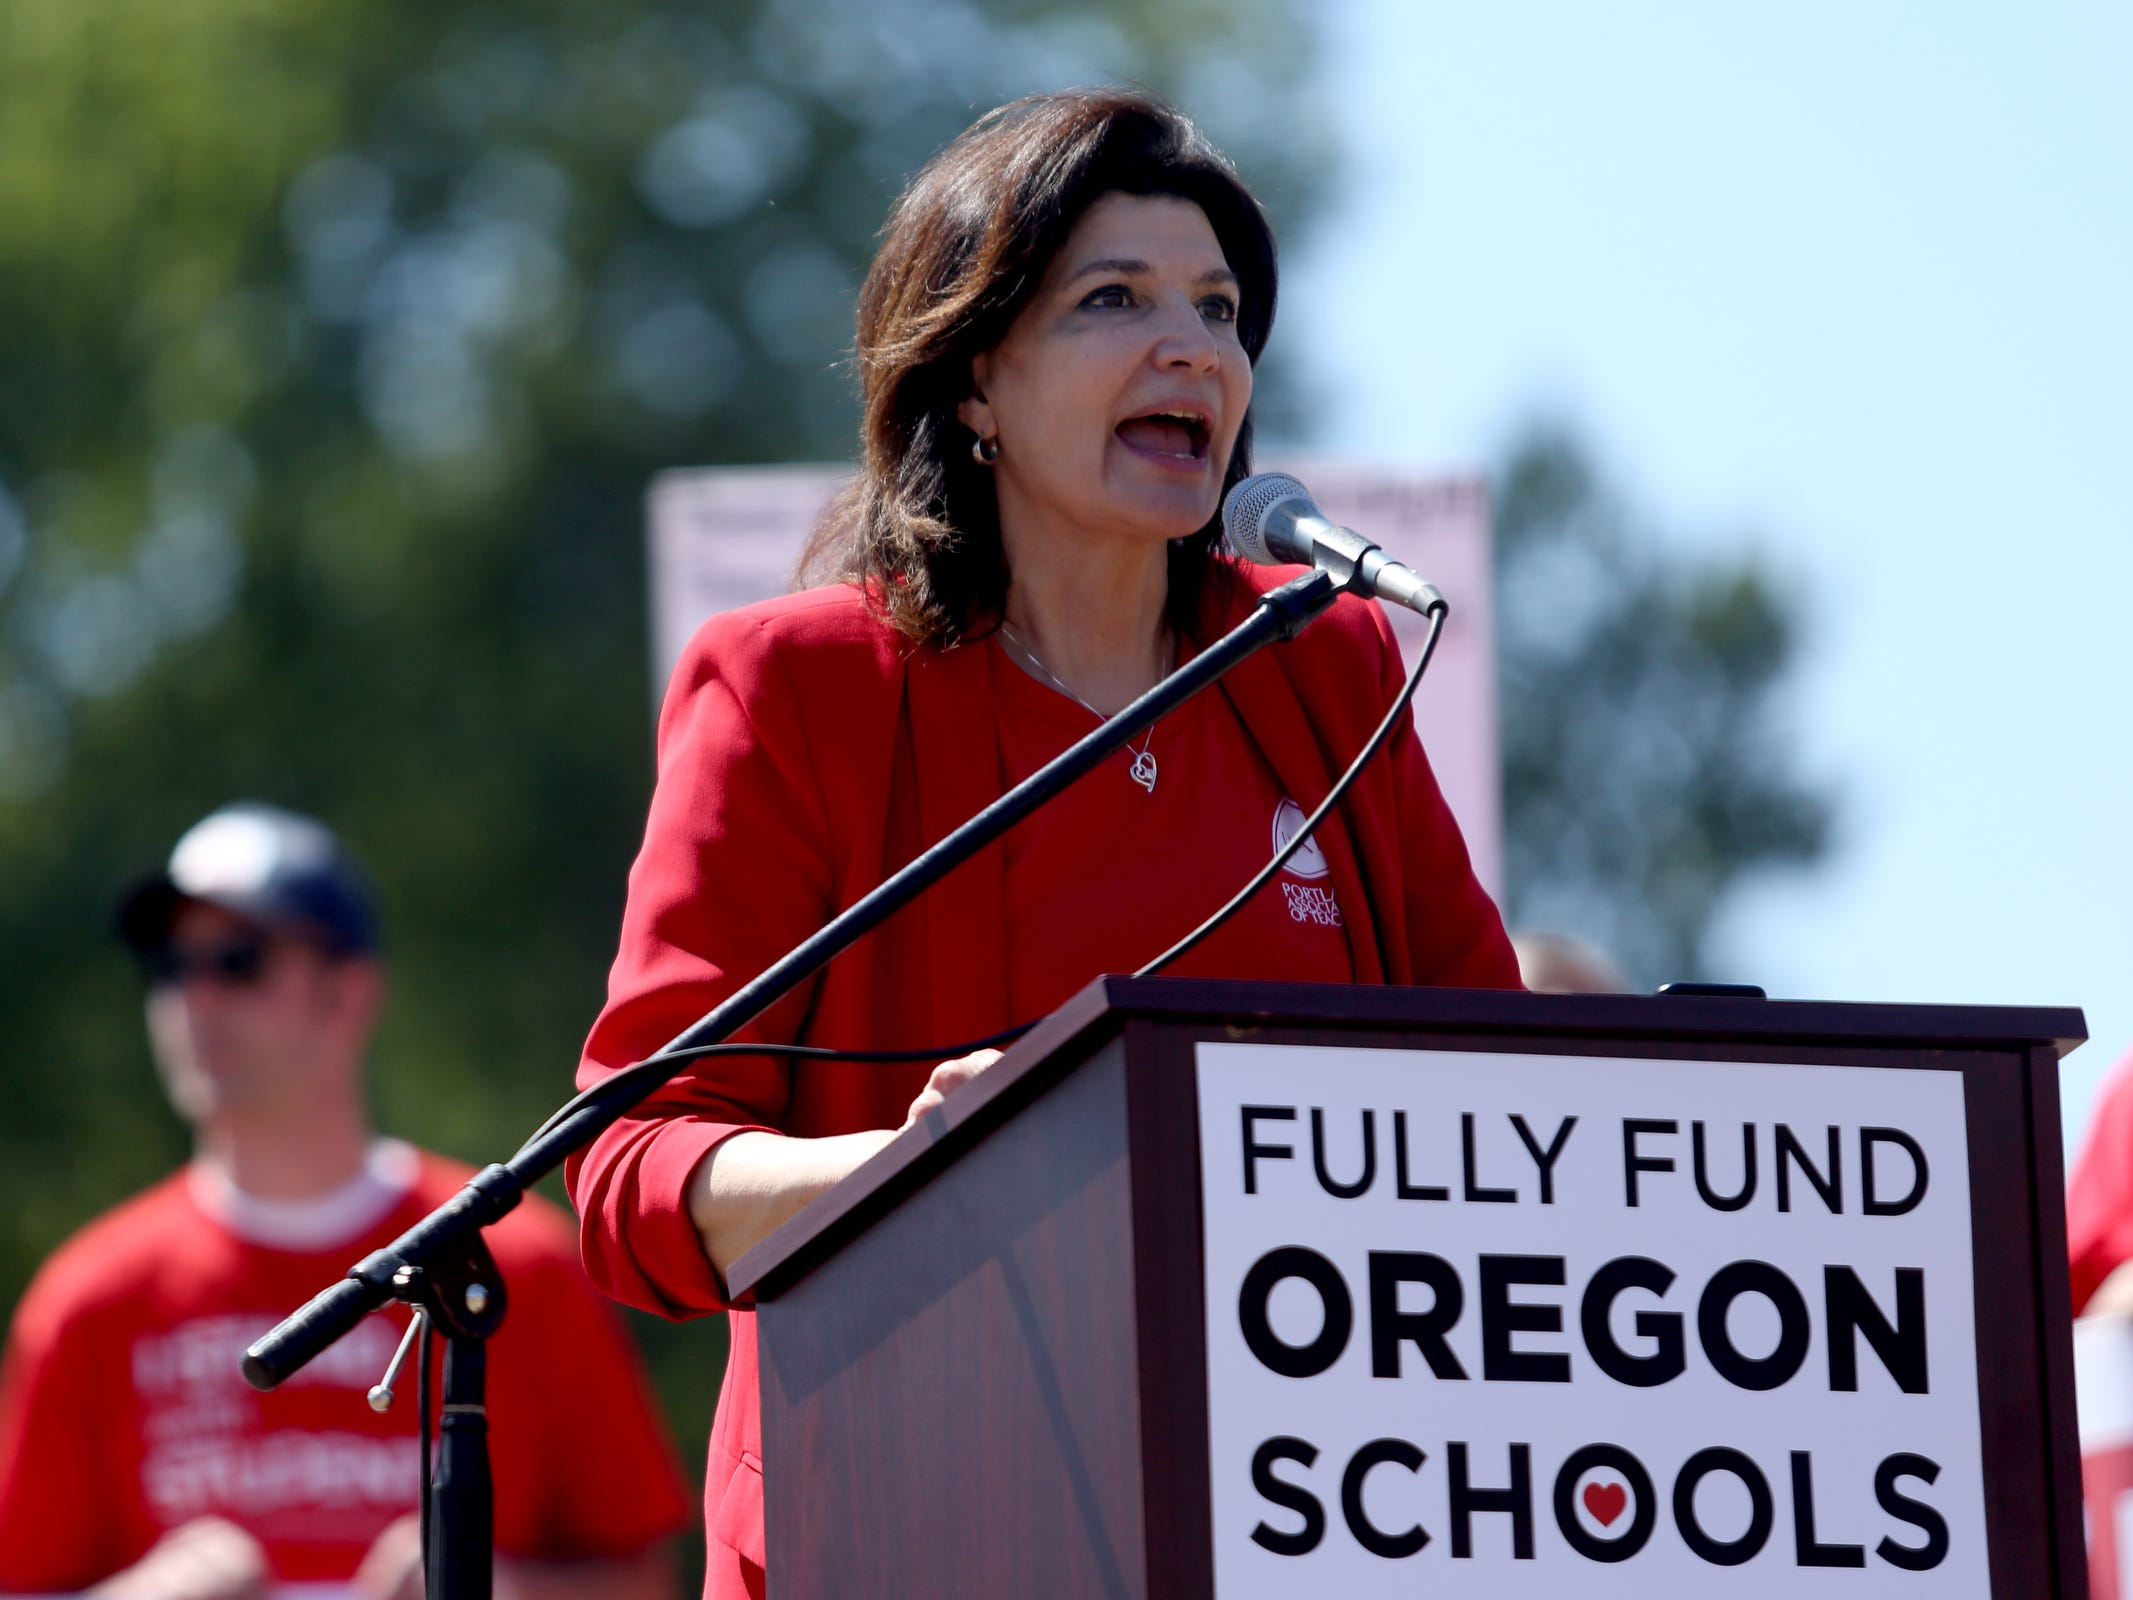 Lily Eskelsen Garc'a, the National Education Association president, speaks as thousands of teachers and education activists rally for a day of action starting at Riverfront Park in Salem on May 8, 2019. Schools across Oregon closed early or were closed for the day as teachers walked out to demand more school funding to address large class sizes, low graduation rates and other concerns.